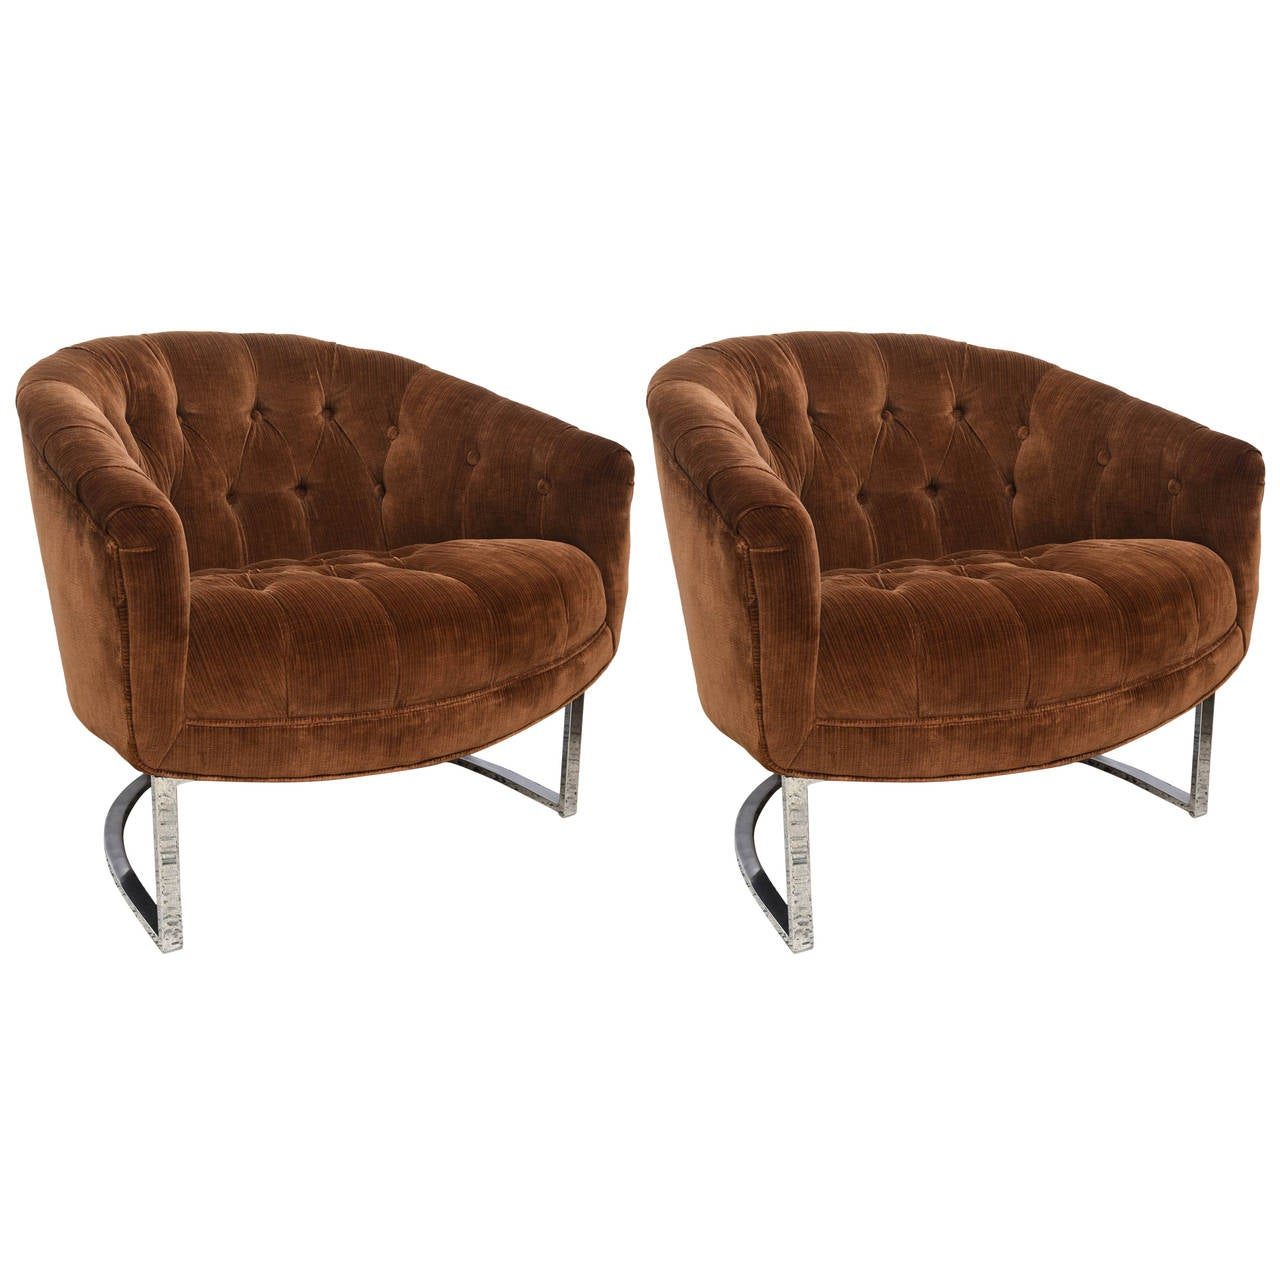 Of tufted barrel back chairs milo baughman usa 1970s at 1stdibs